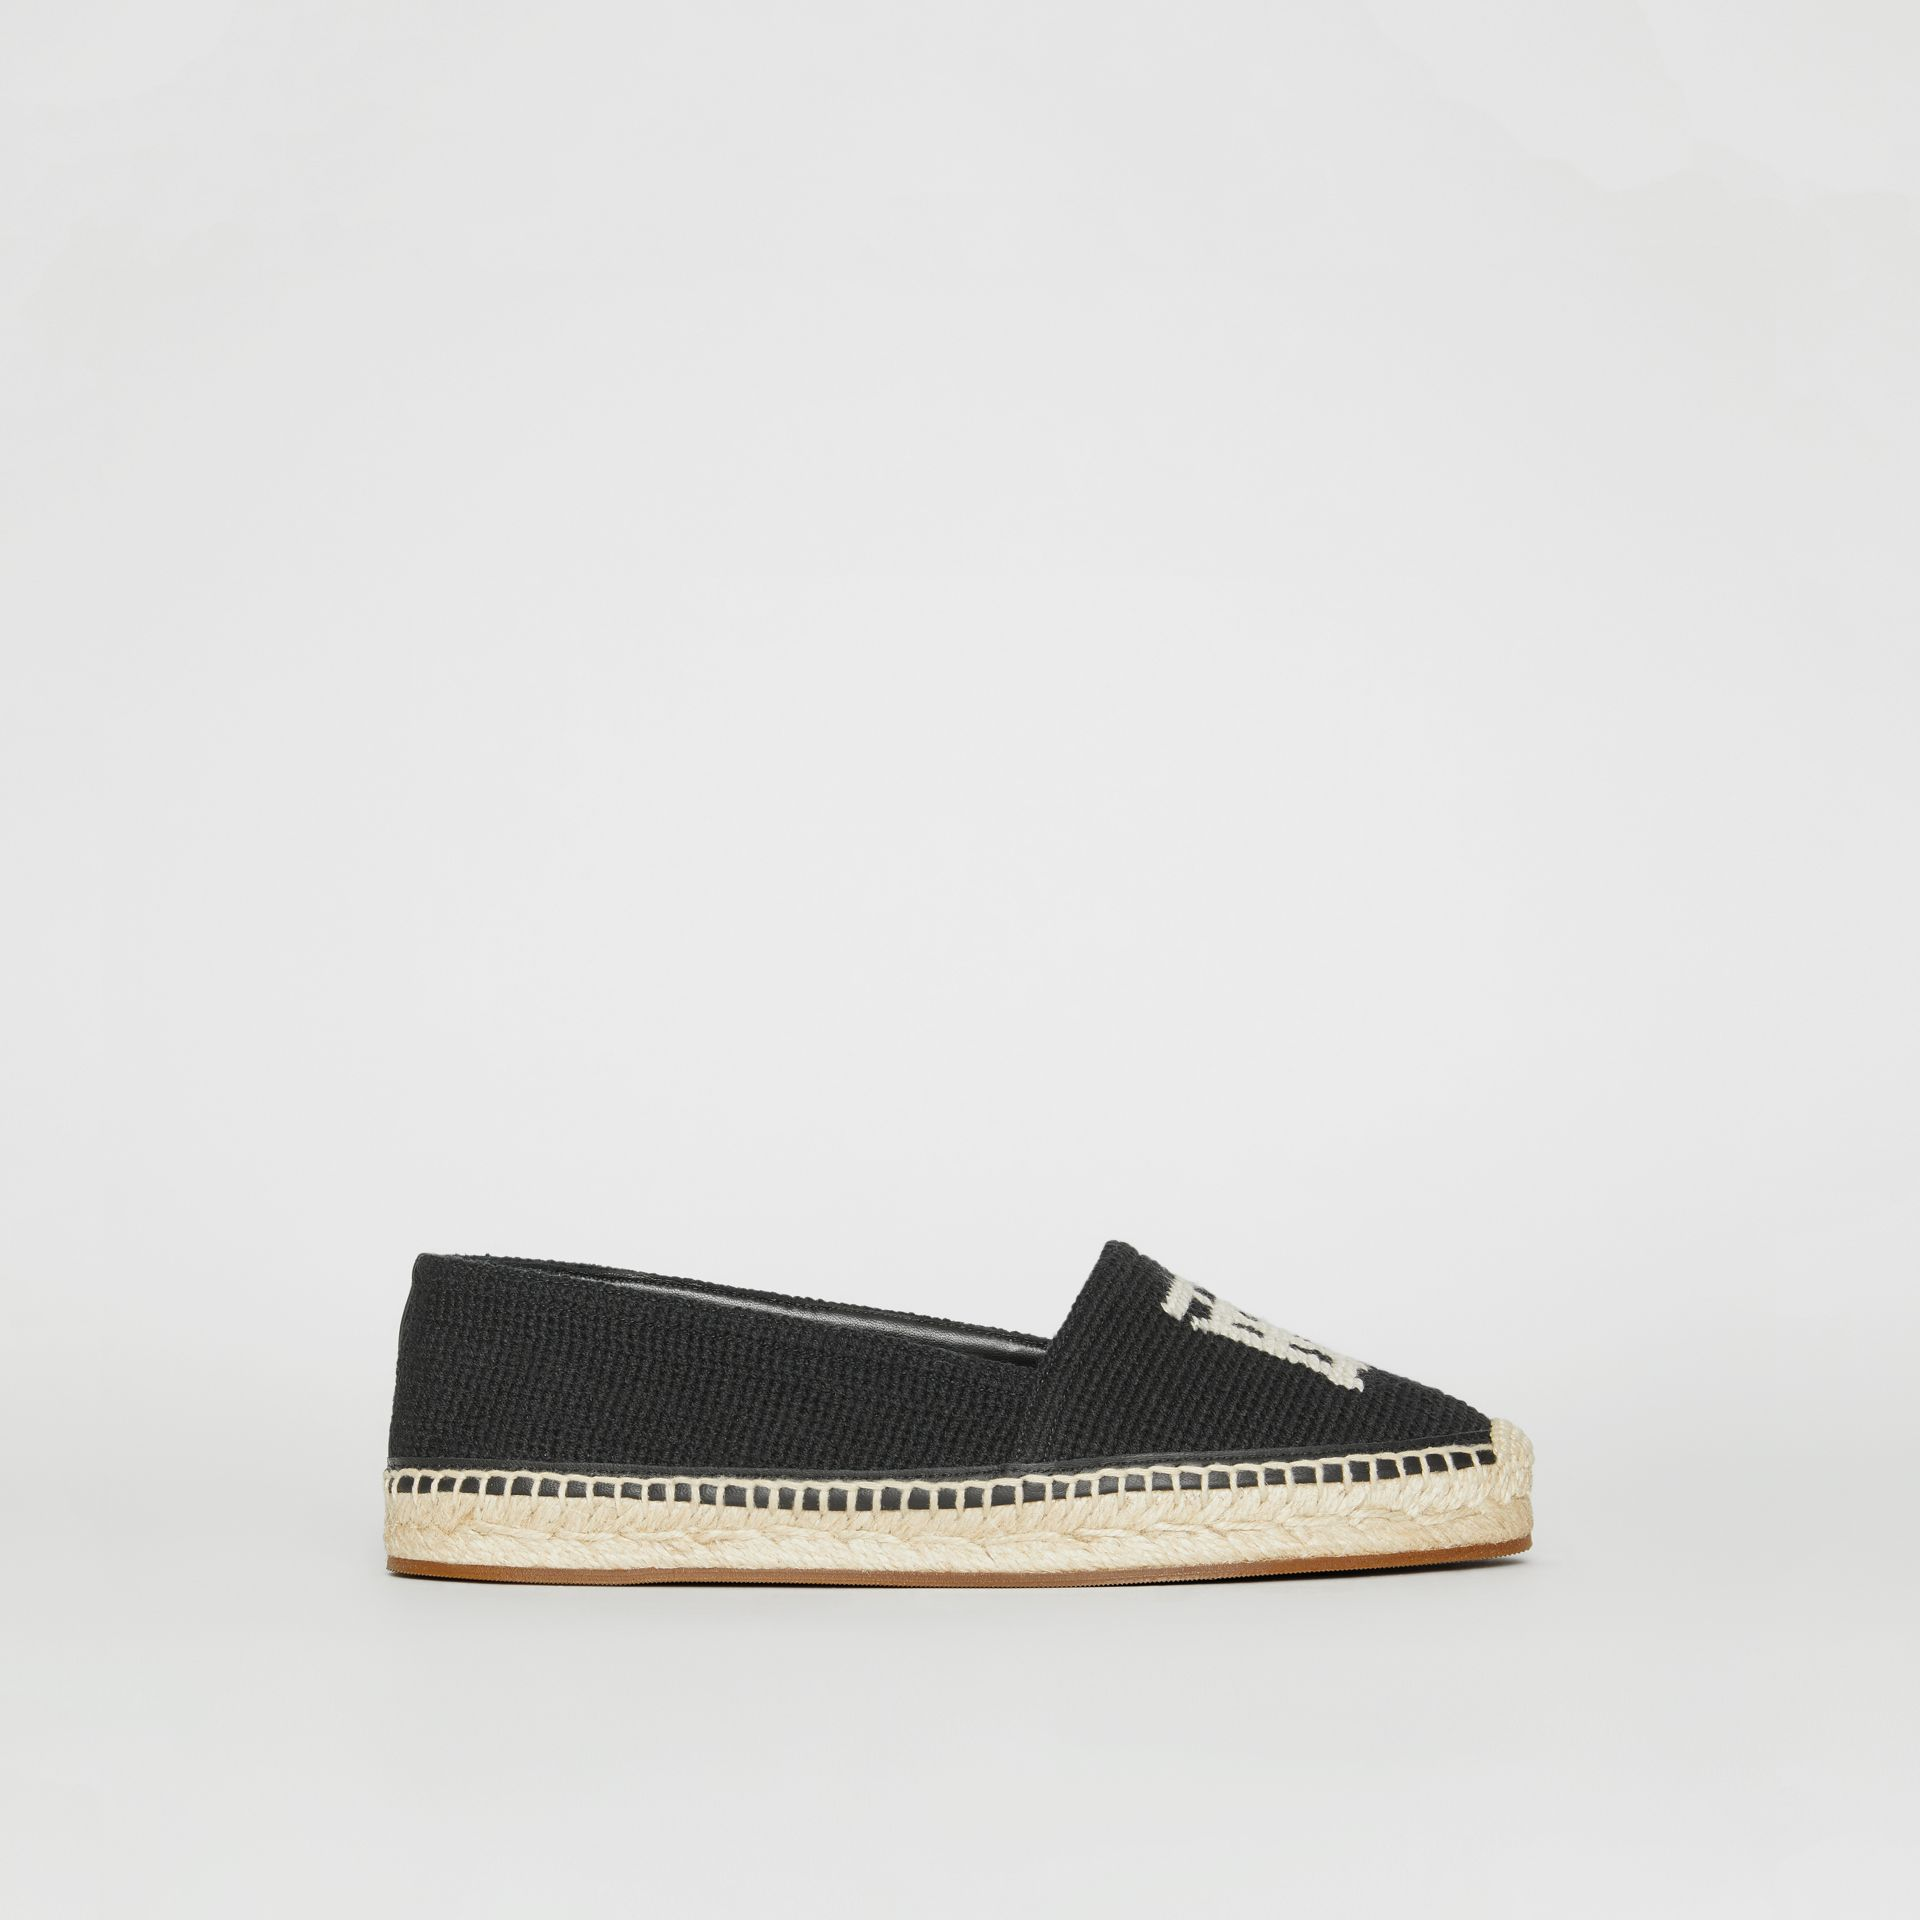 Monogram Motif Cotton and Leather Espadrilles in Black/ecru - Women | Burberry United Kingdom - gallery image 5